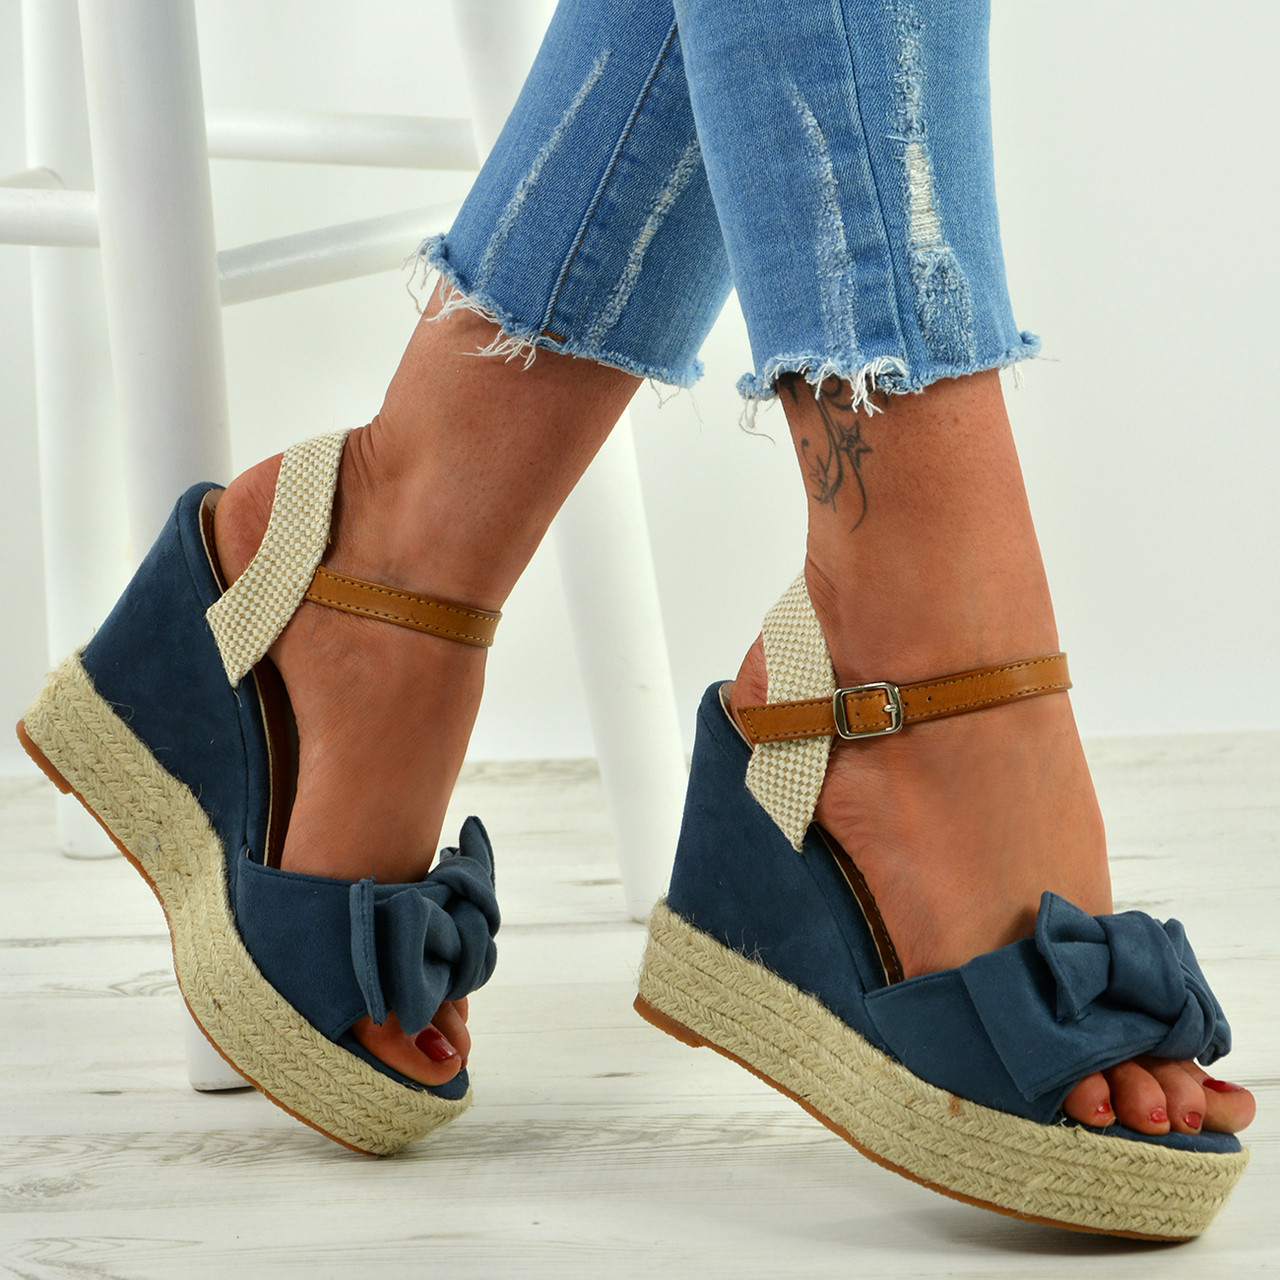 ecd3a1acf39 New Womens High Heel Wedges Ladies Bow Ankle Strap Platform Sandals Shoes